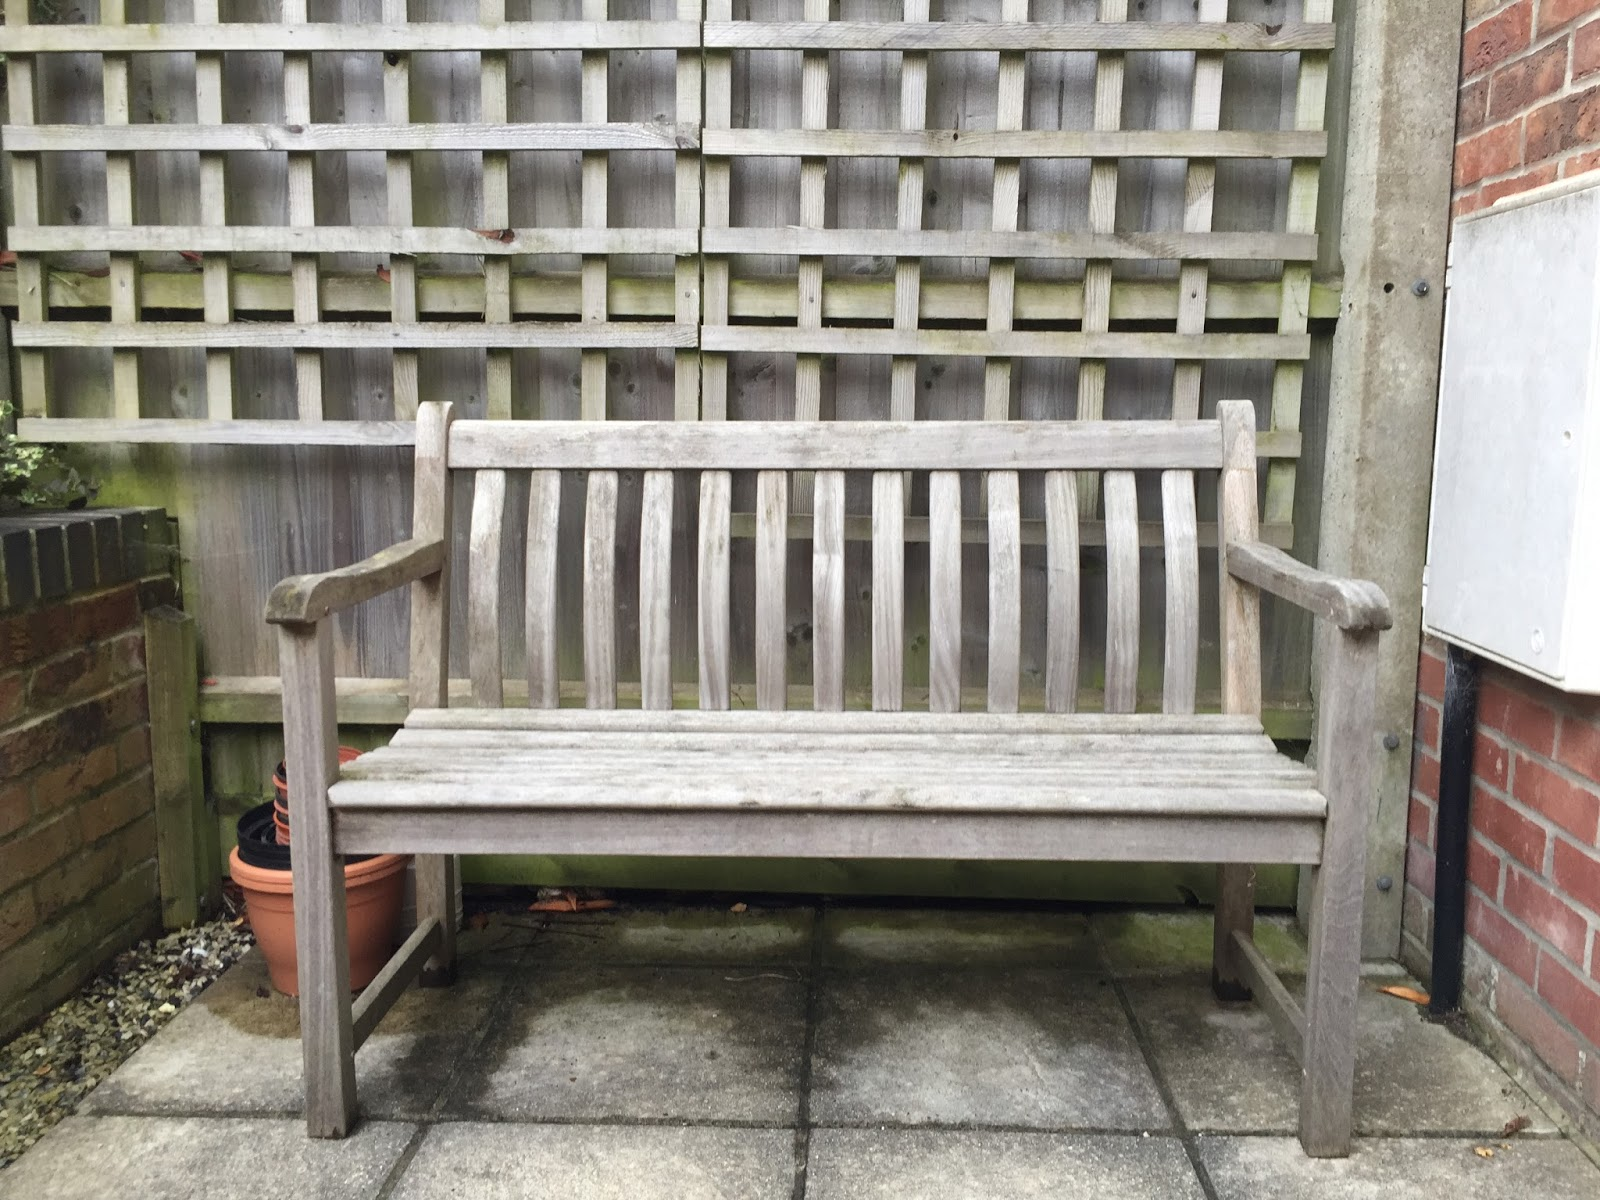 The original bench in need of some TLC